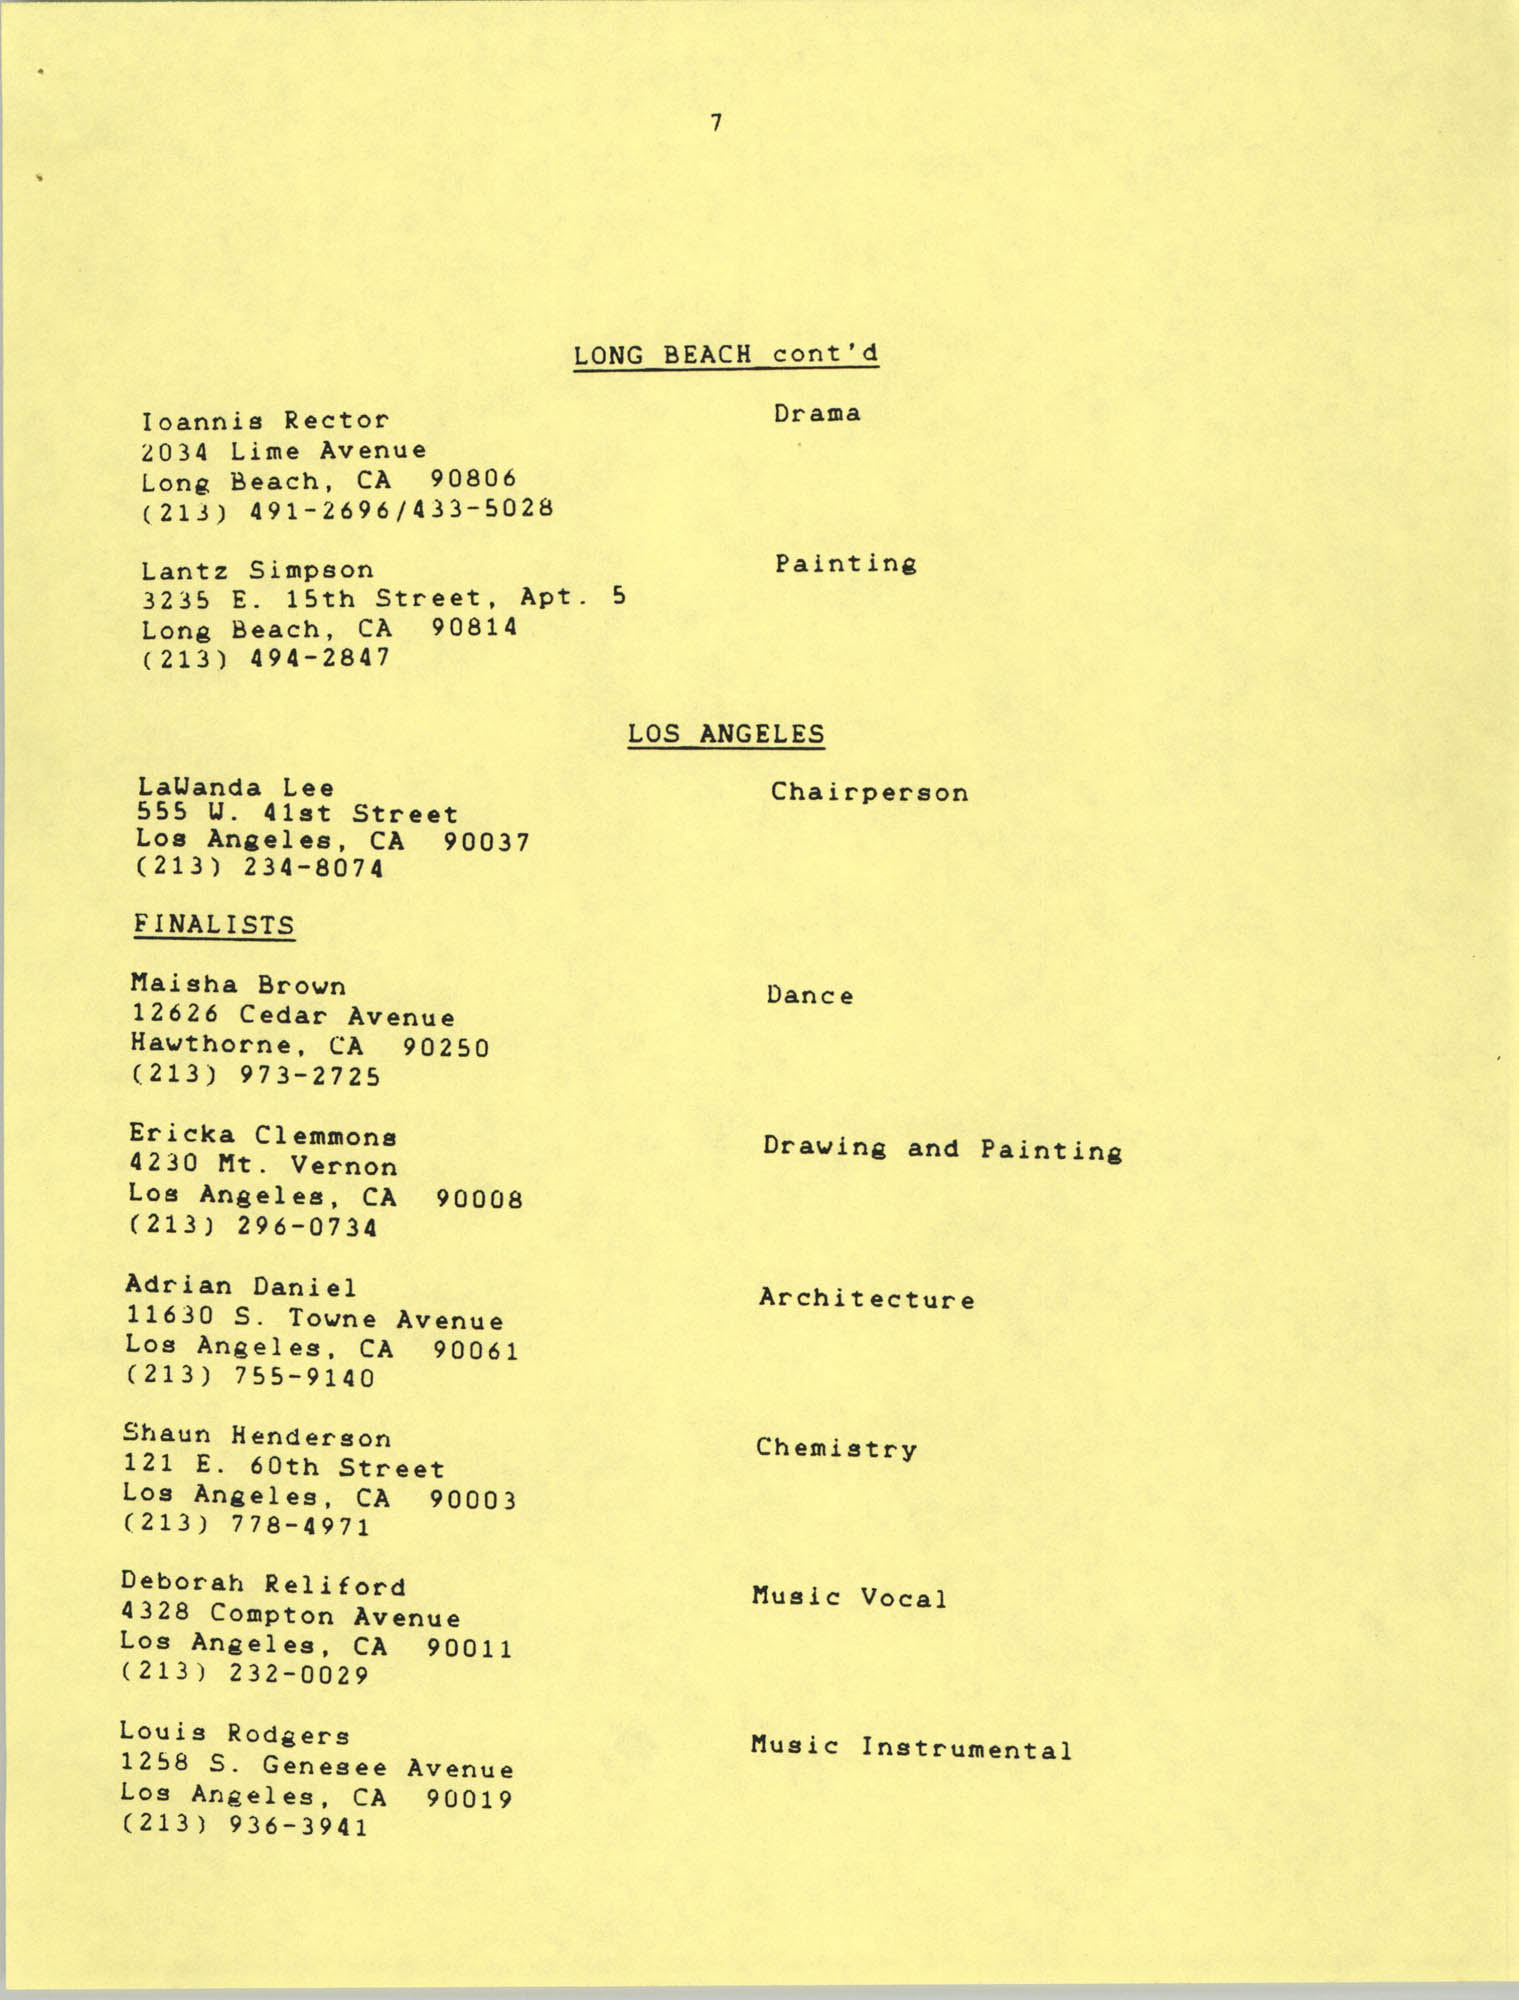 1987 Act-So Contestants, NAACP West Coast Region, Page 7